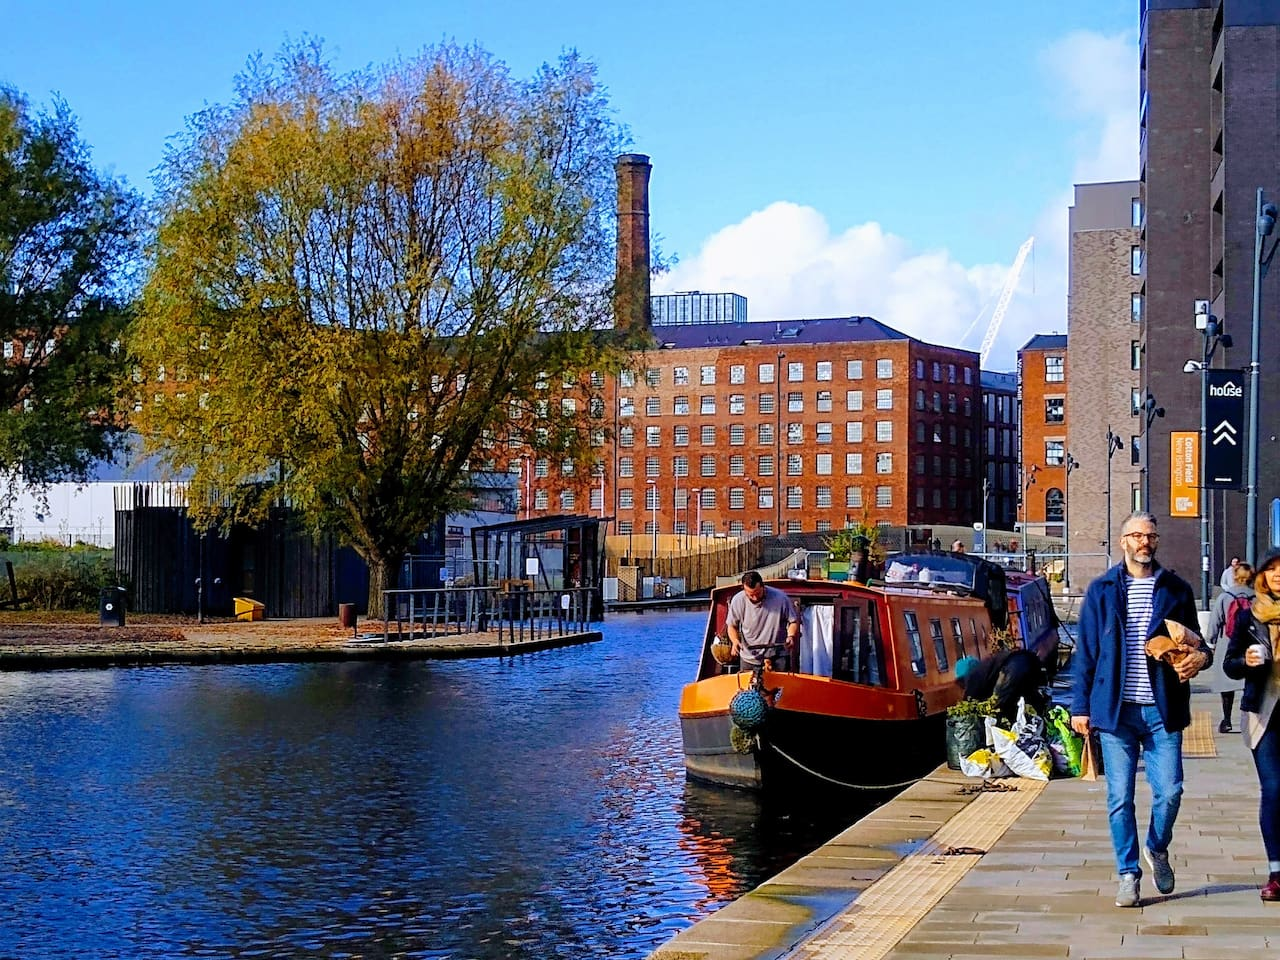 Islington Marina/Ancoats are 10 minutes walk away. You will find here the best bread in town at Pollen bakery, it's a fantastic place to have a gourmet breakfast. Several restaurants and bars are also located here.